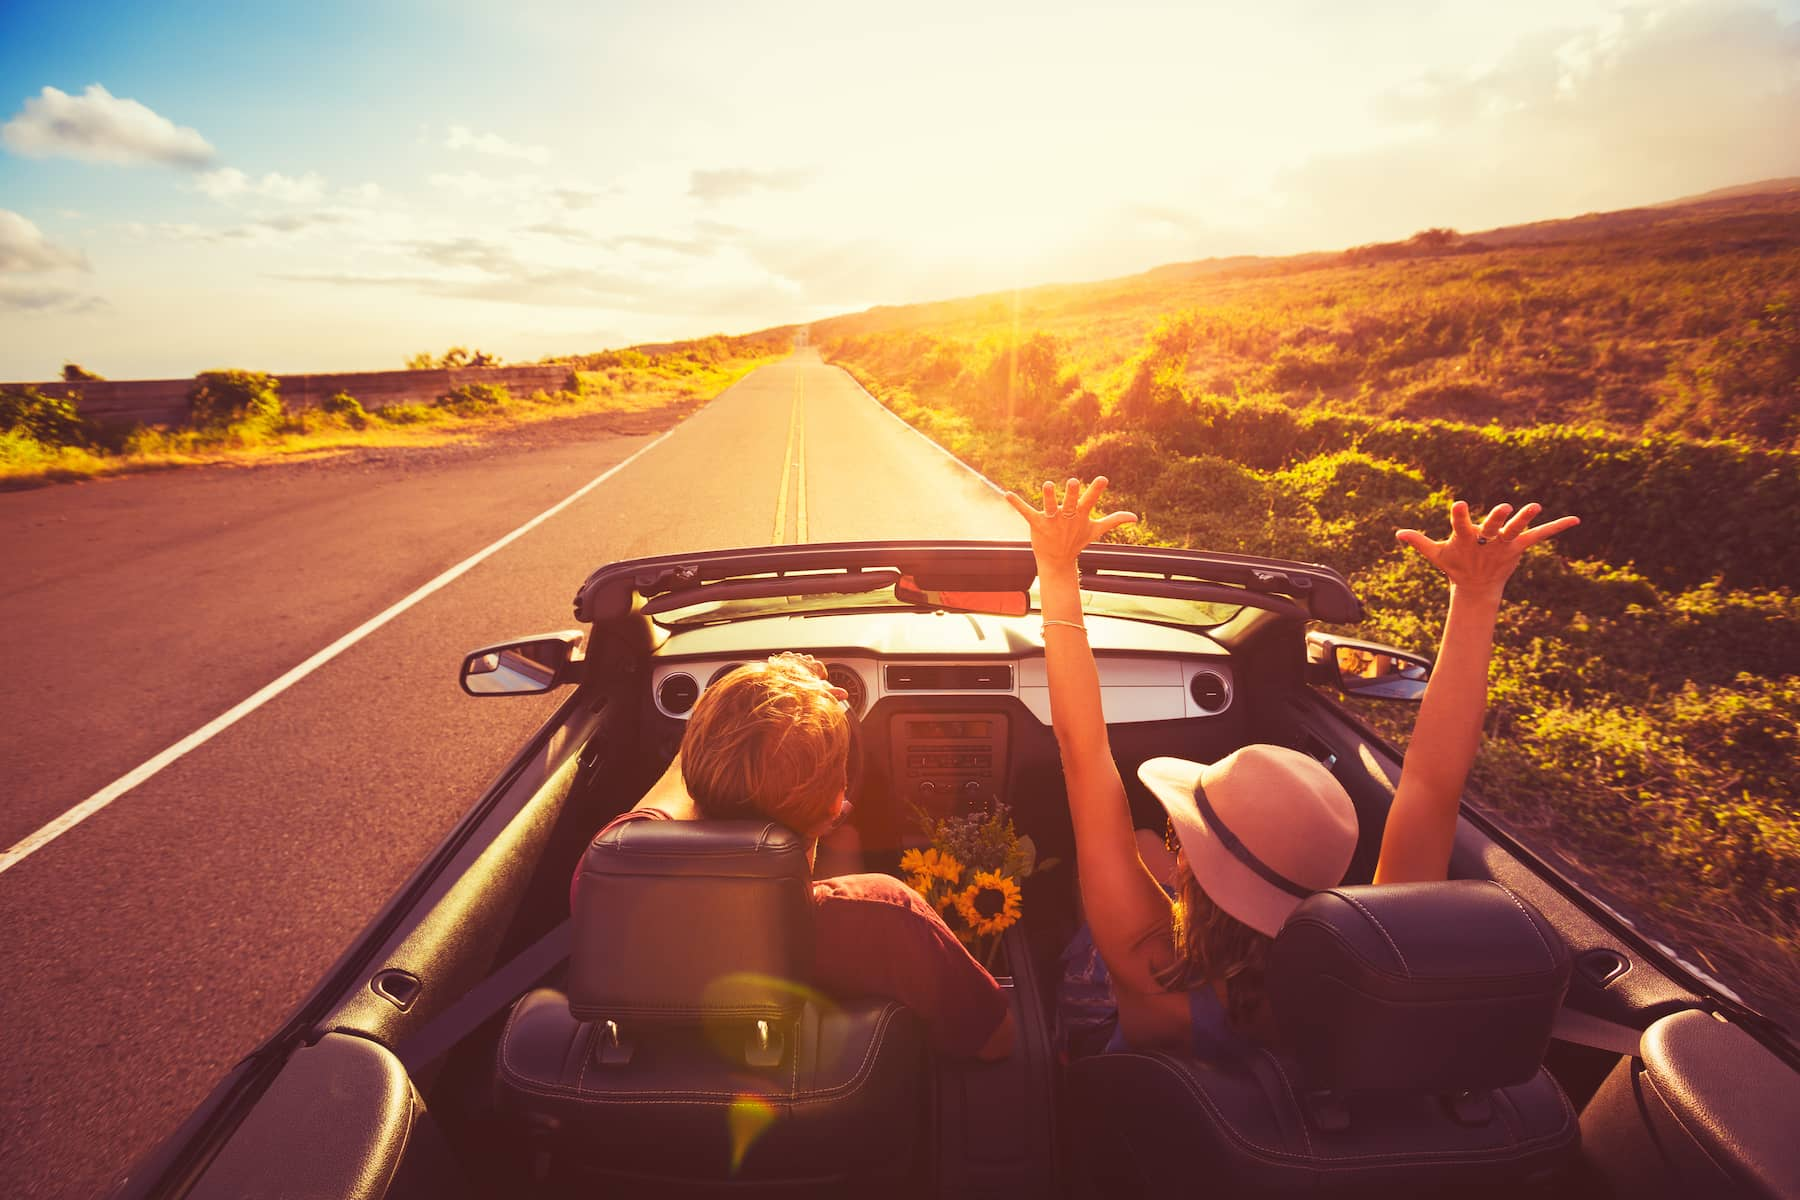 I want to Plan a Road Trip - How to Plan a Road Trip - How to Plan a Road Trip Across the US